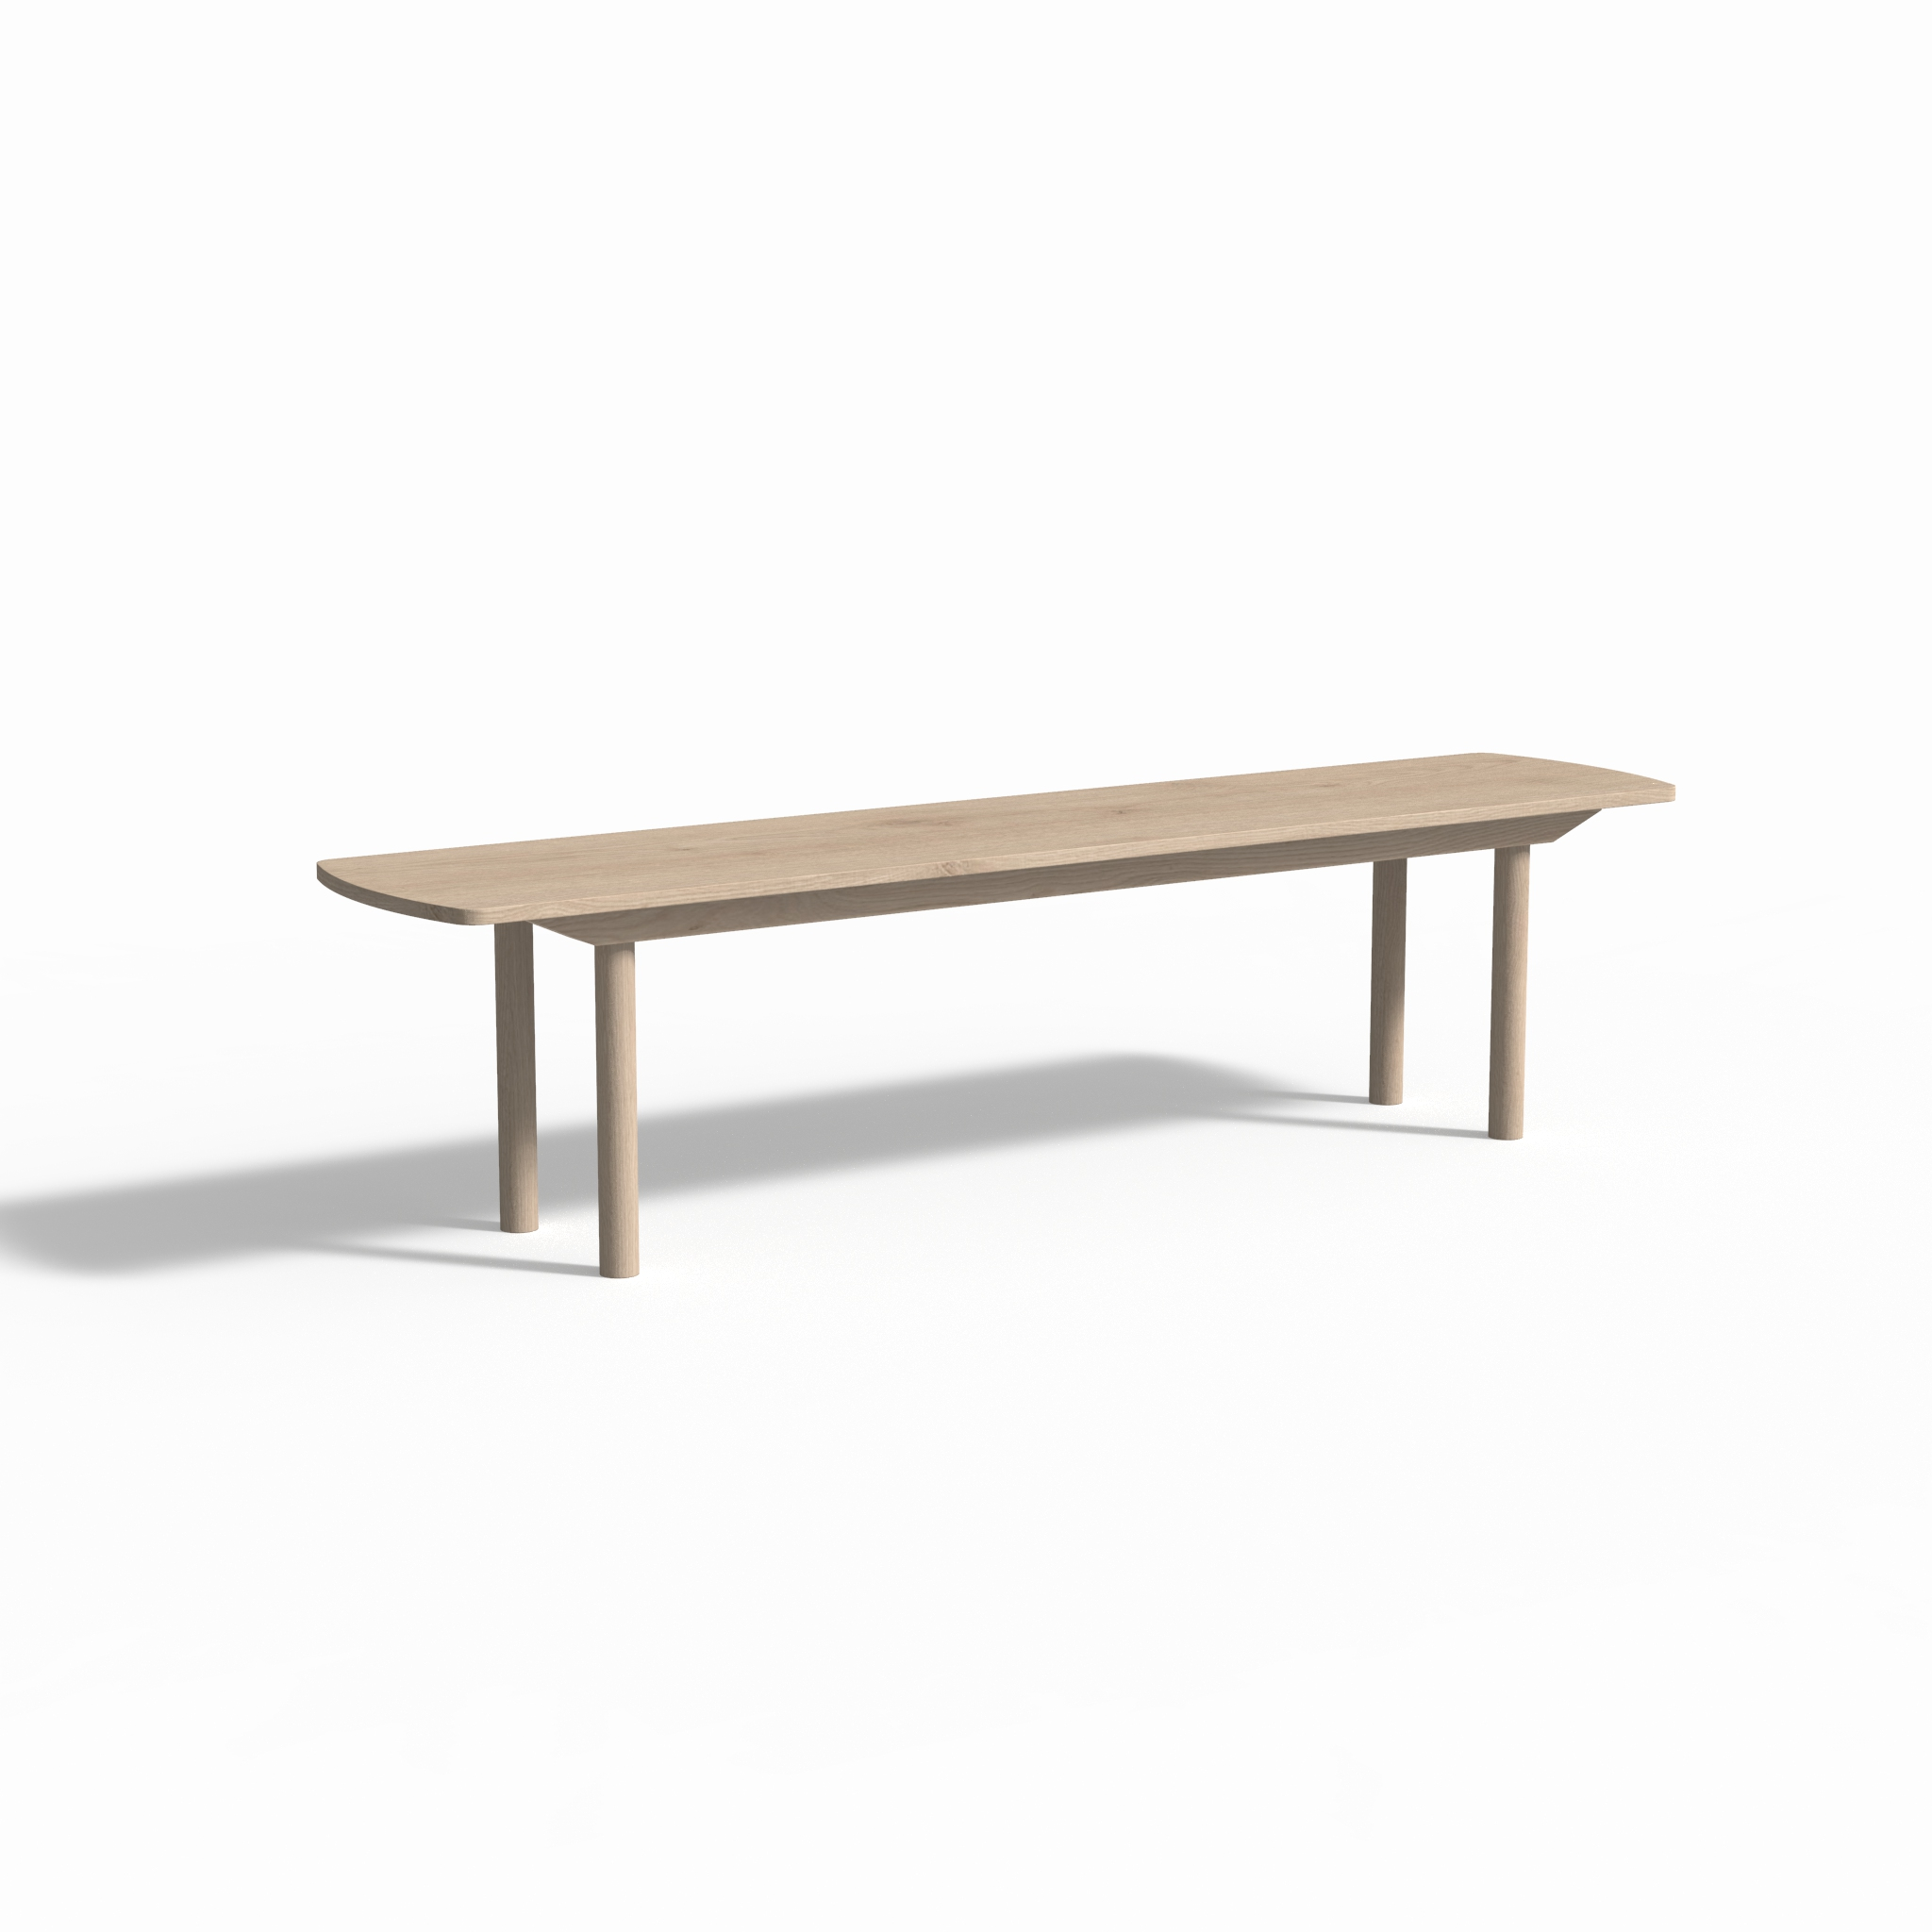 Koskela_Brolga Bench_Render File_Issue A.4498.jpg